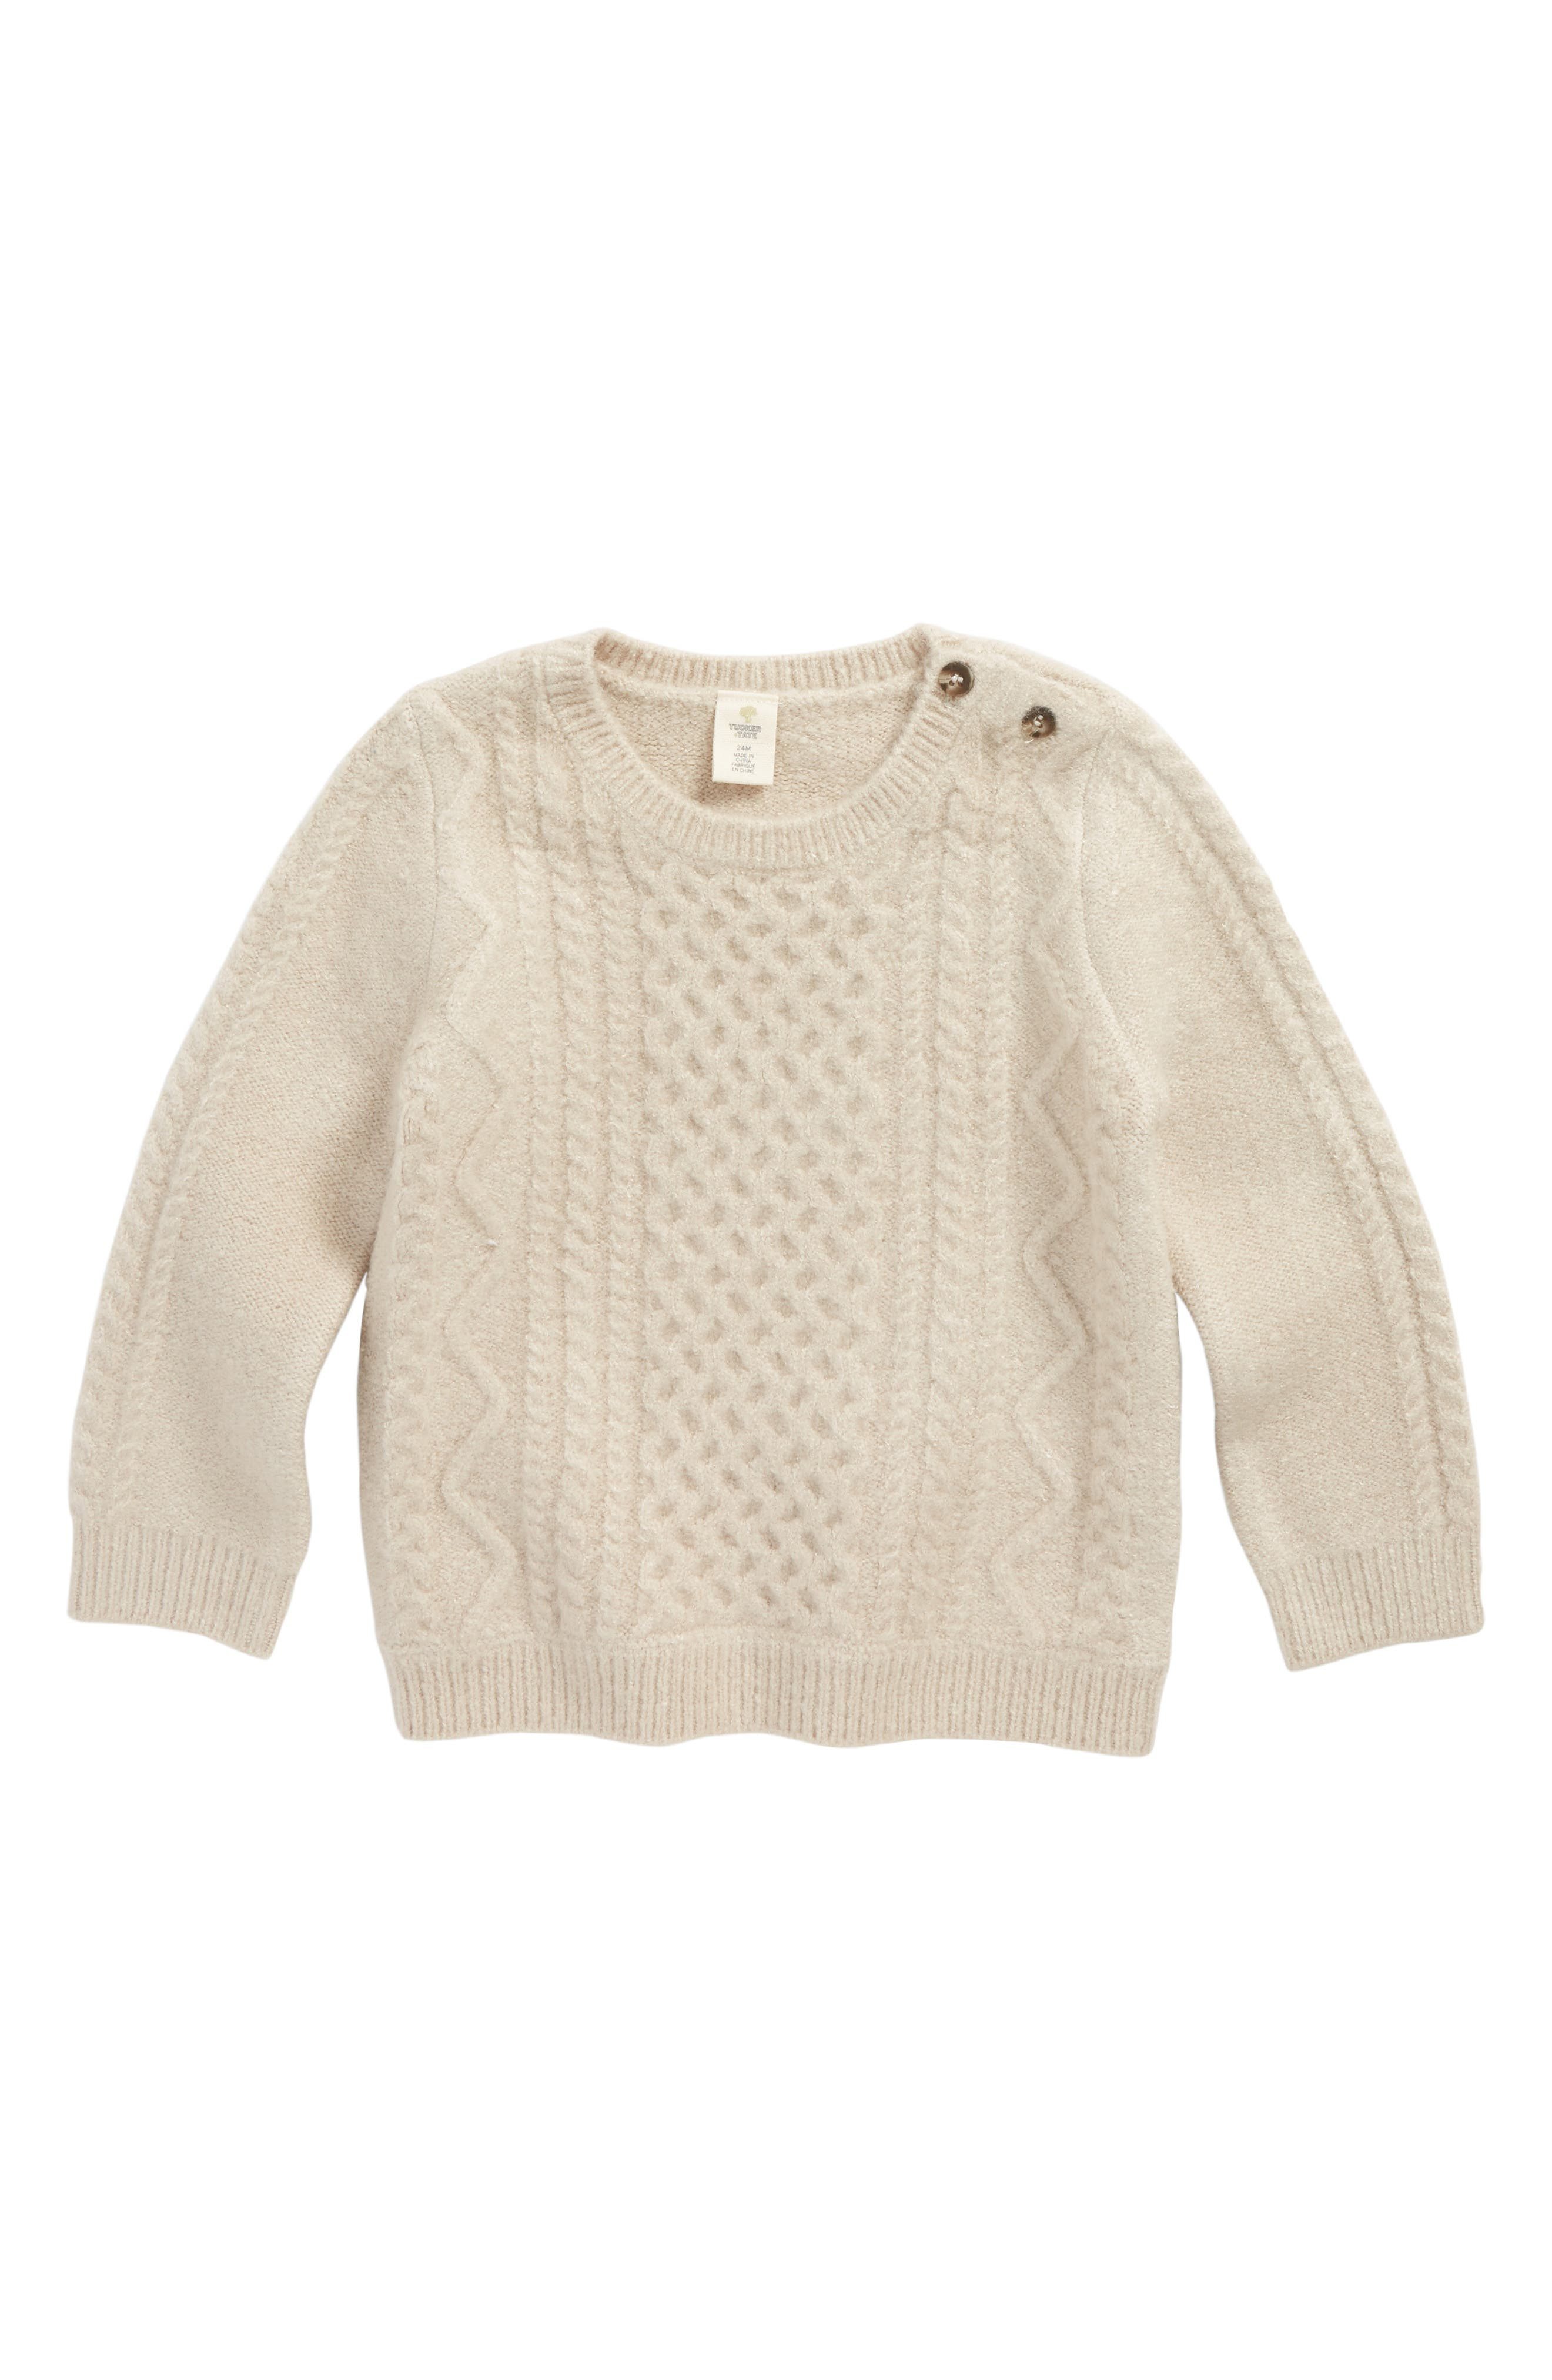 TUCKER + TATE Cable Sweater, Main, color, 900